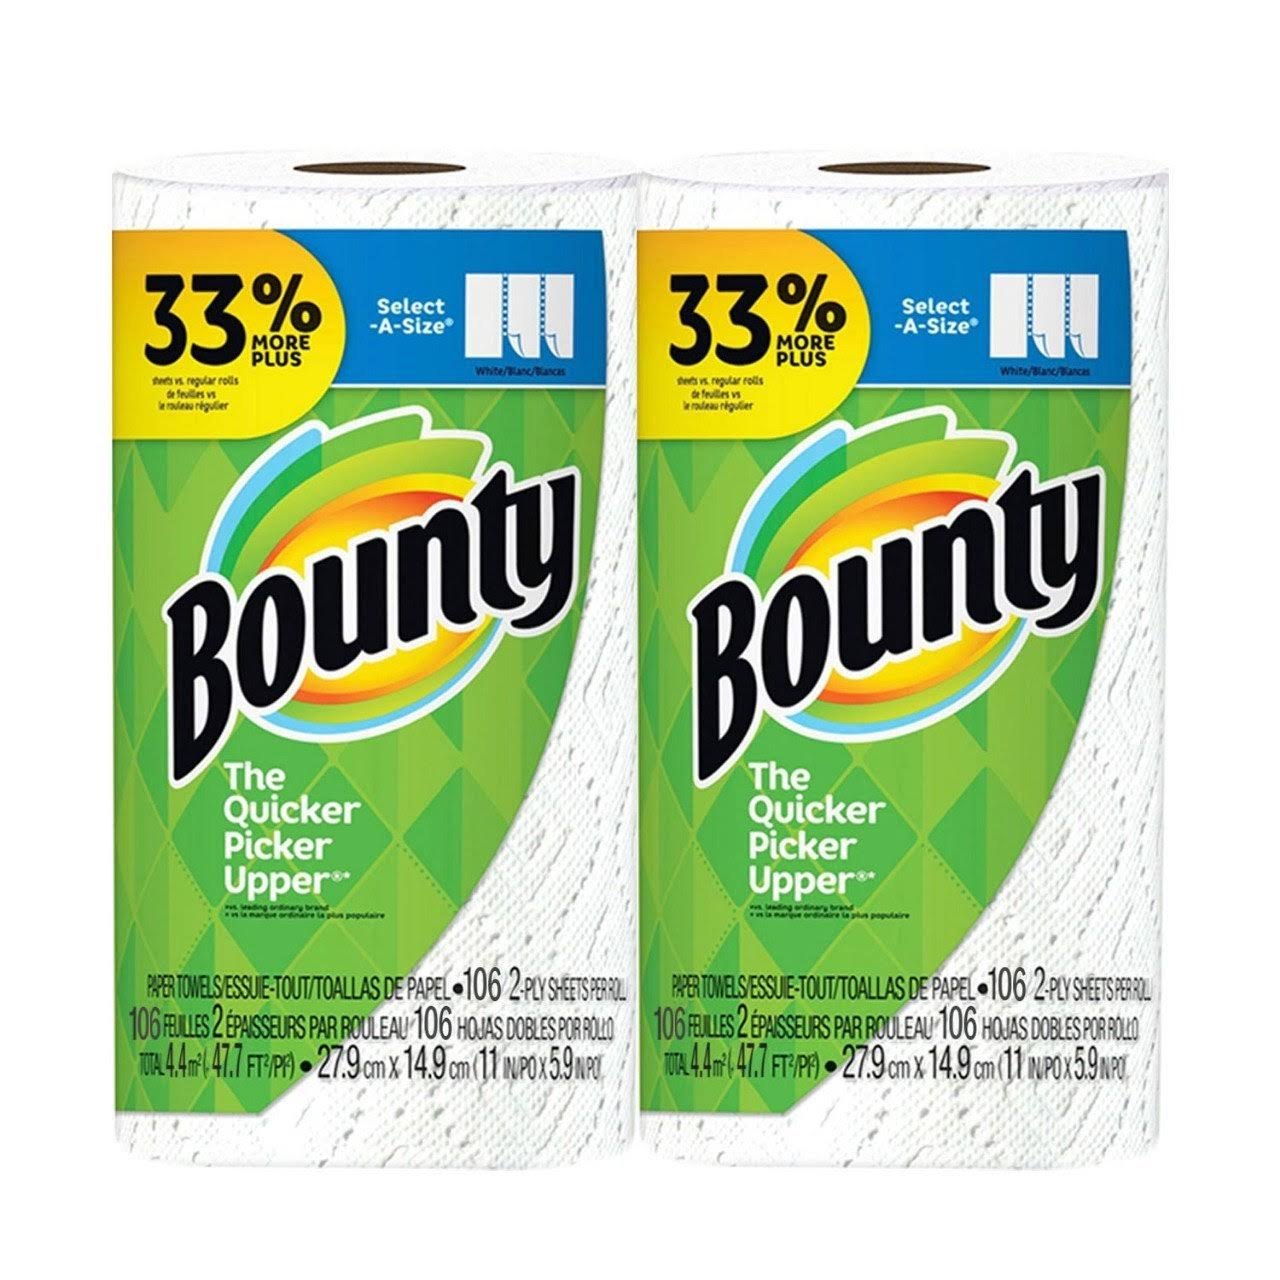 Bounty Select-A-Size Big Roll Paper Towel (2-Ply 106 Sheets) - Royal Supermarket - Delivered by Mercato